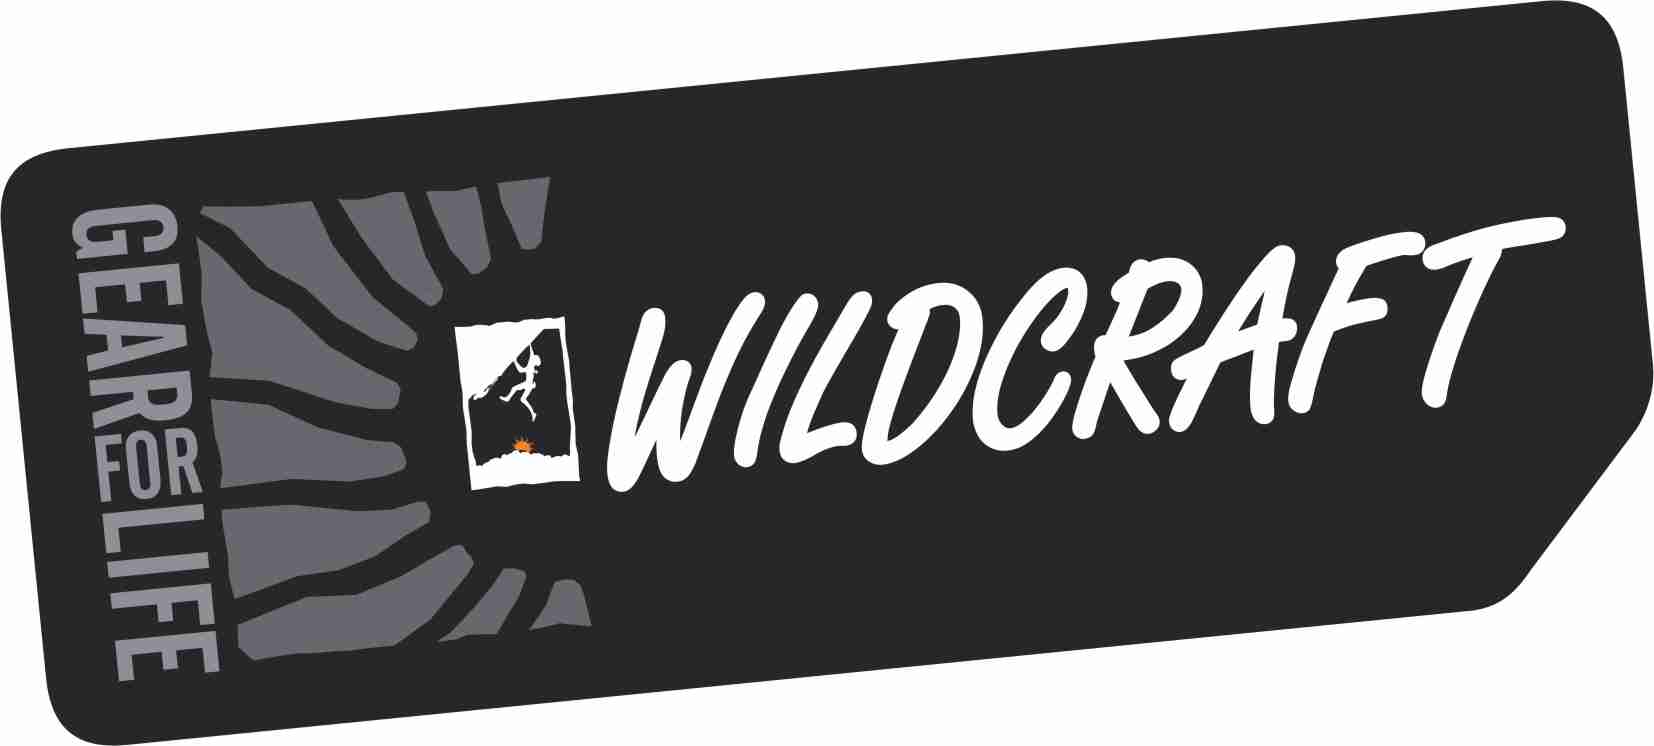 File:Wildcraft.jpg.